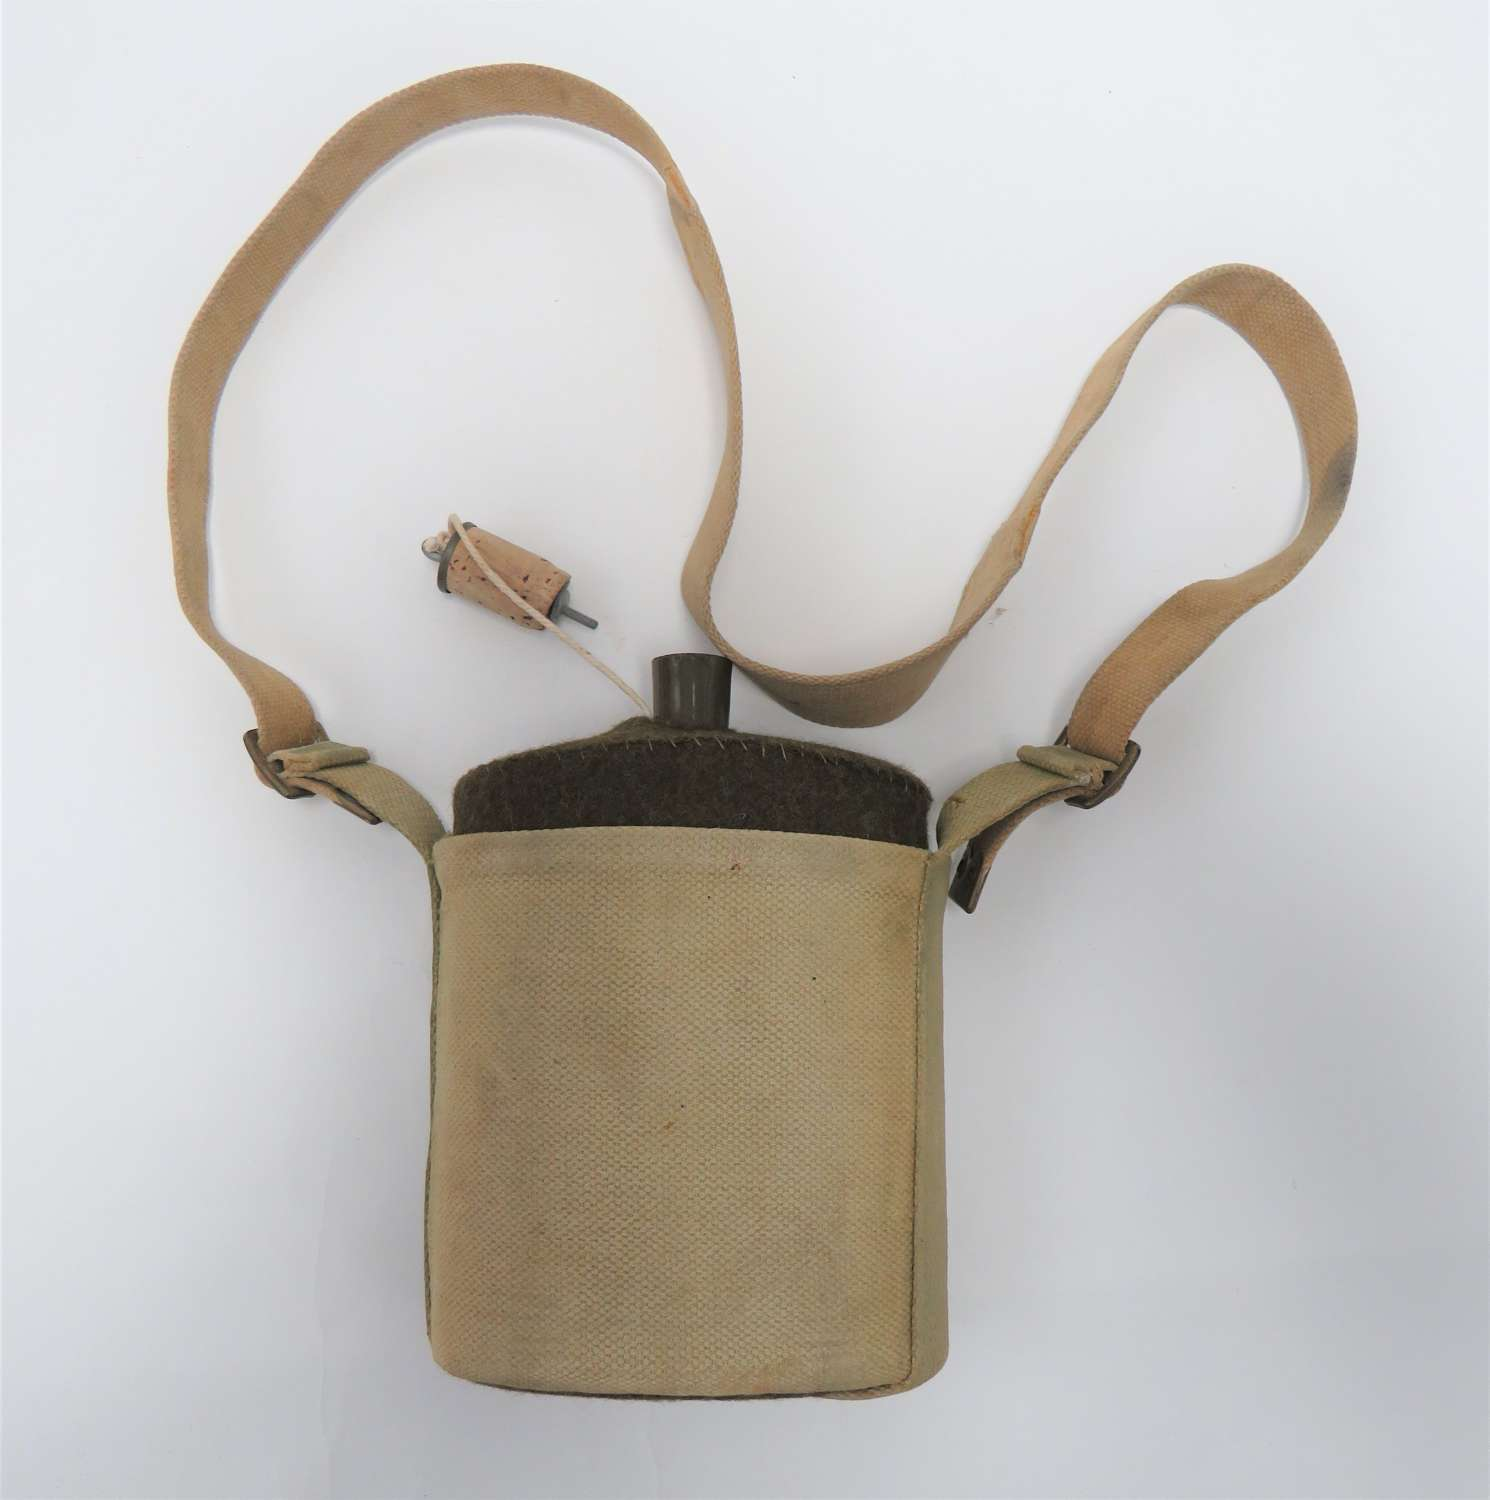 1937 Pattern Waterbottle and Cradle with Shoulder Strap